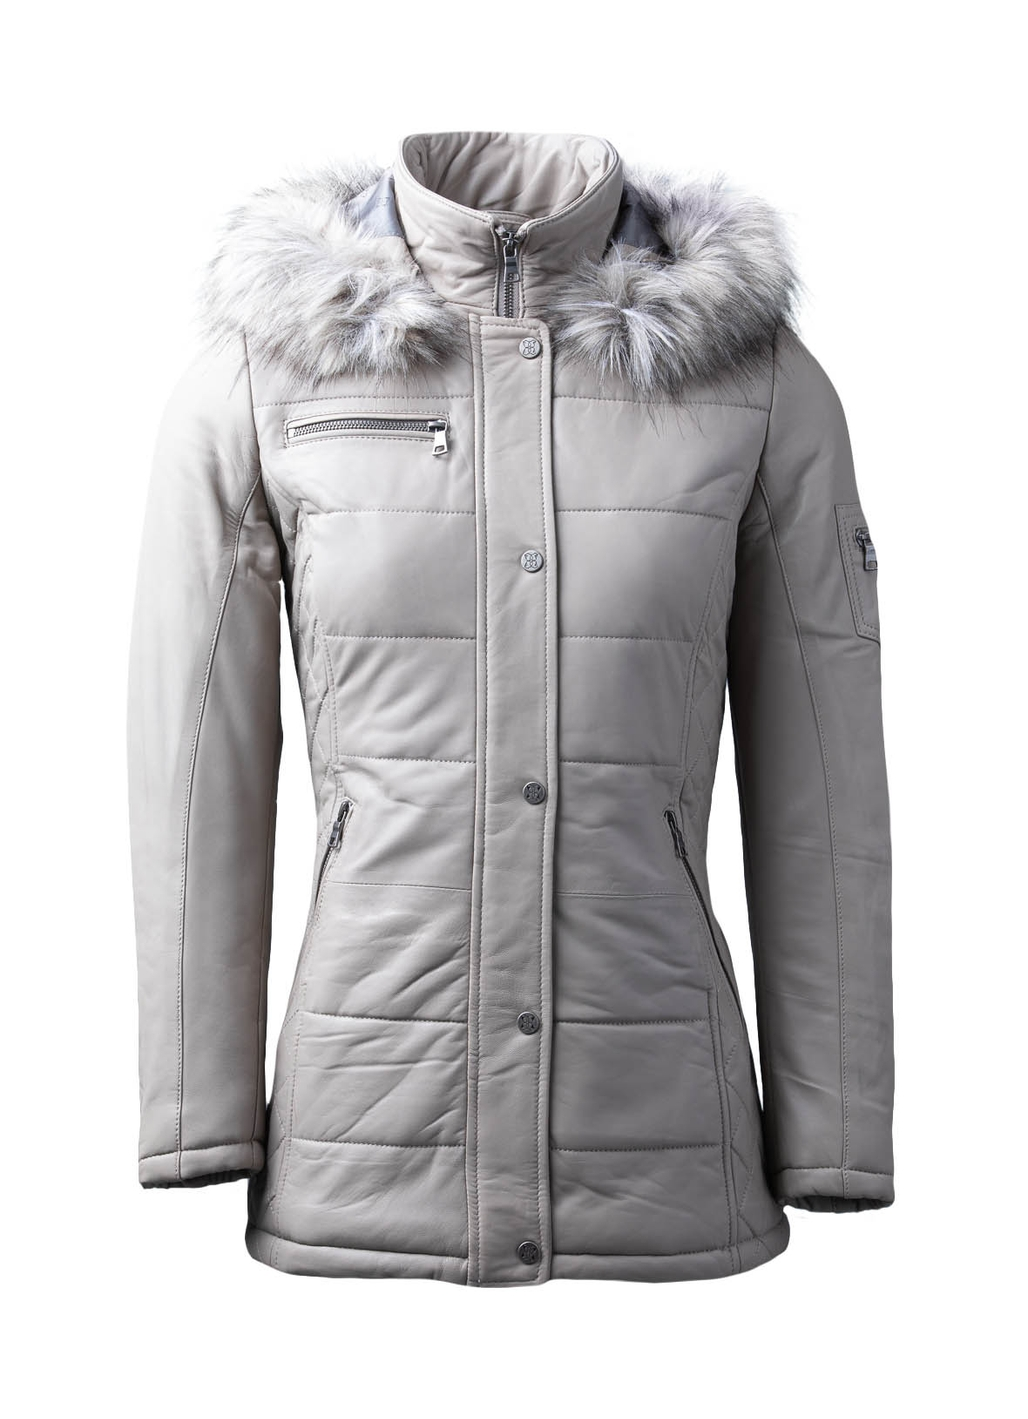 Fairfield Hooded Padded Leather Coat in Stone